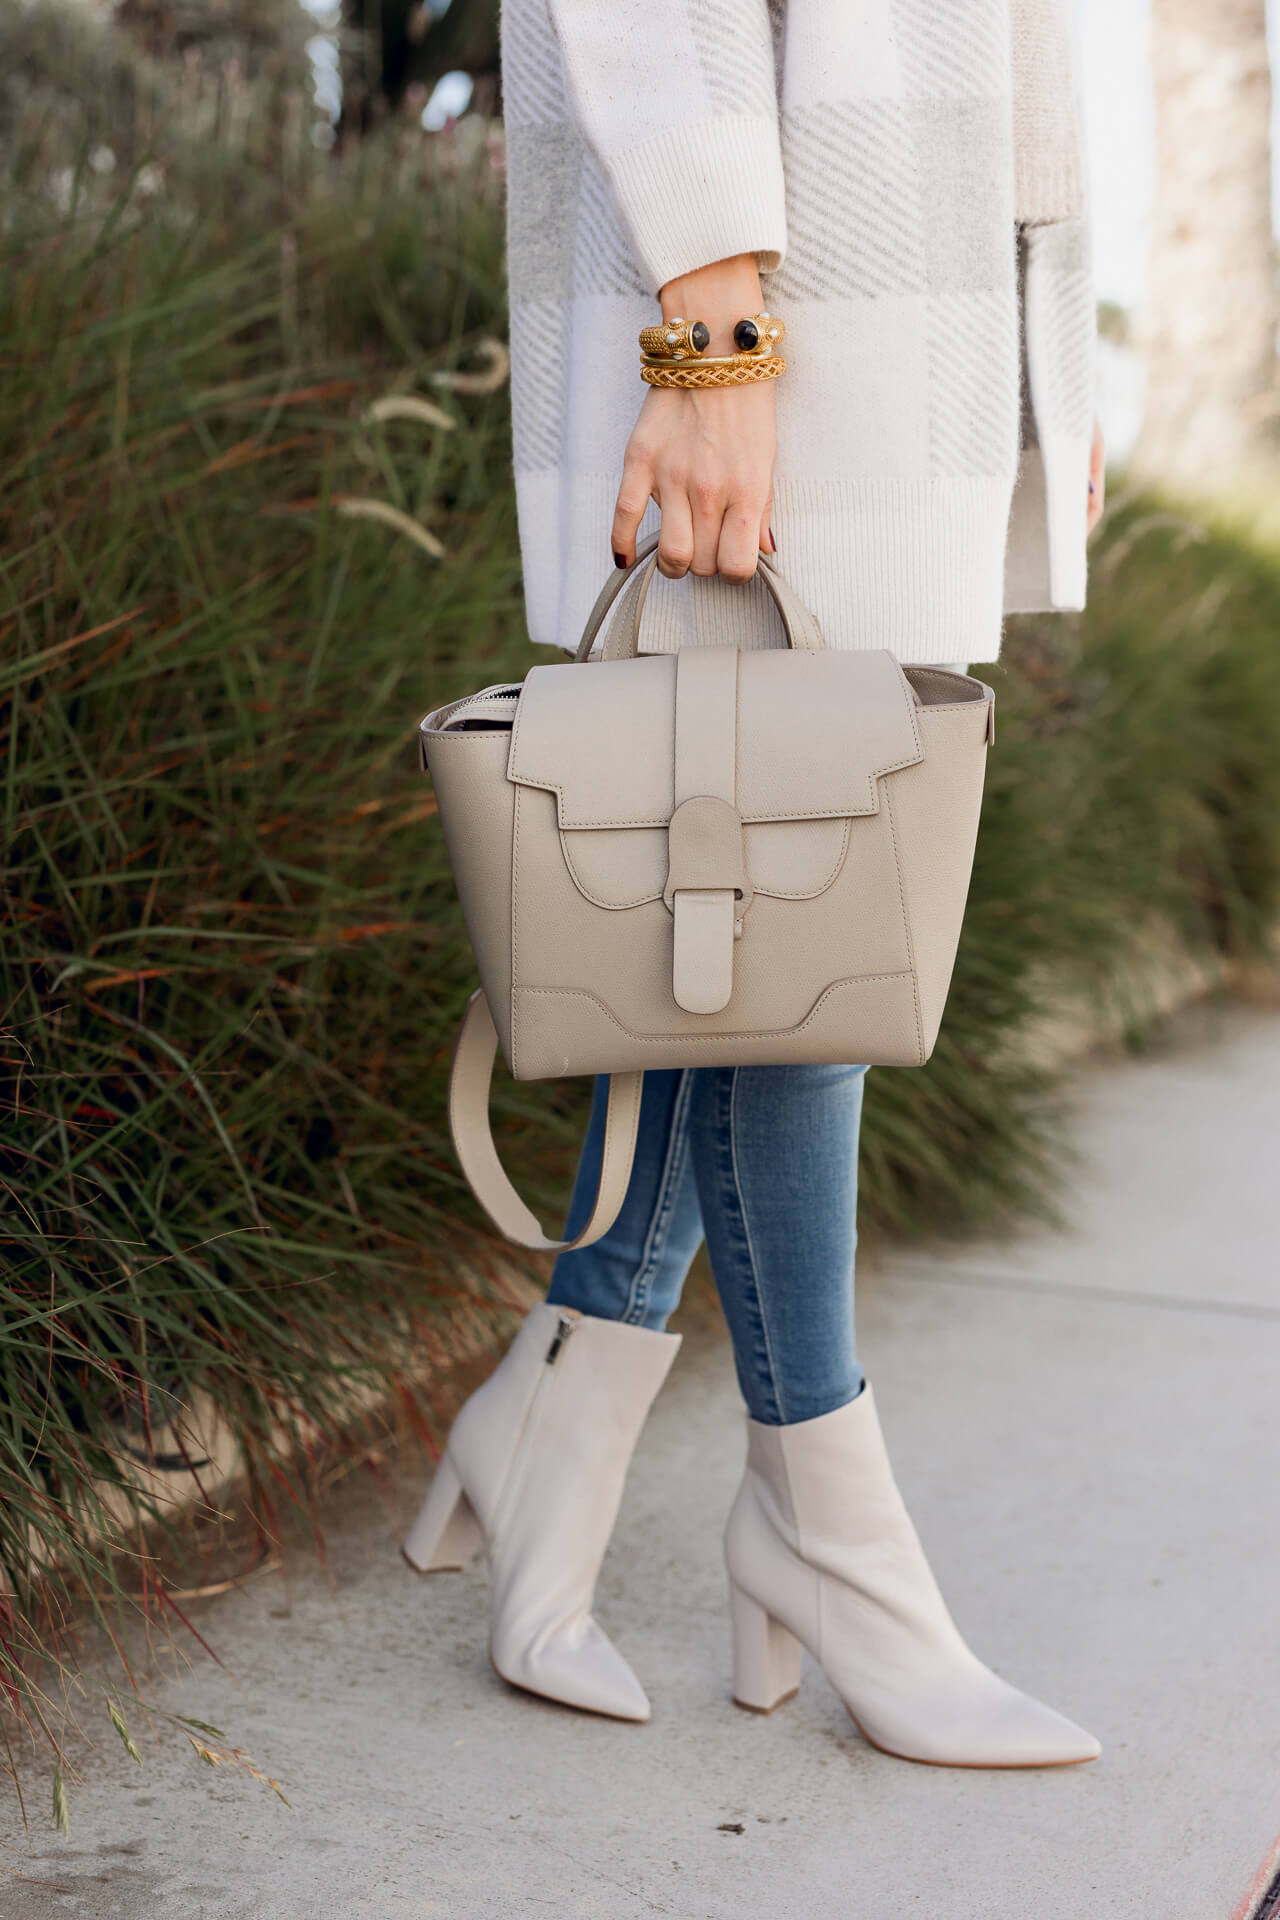 Obsessed with this chic grey handbag from Sevres! - M Loves M @marmar